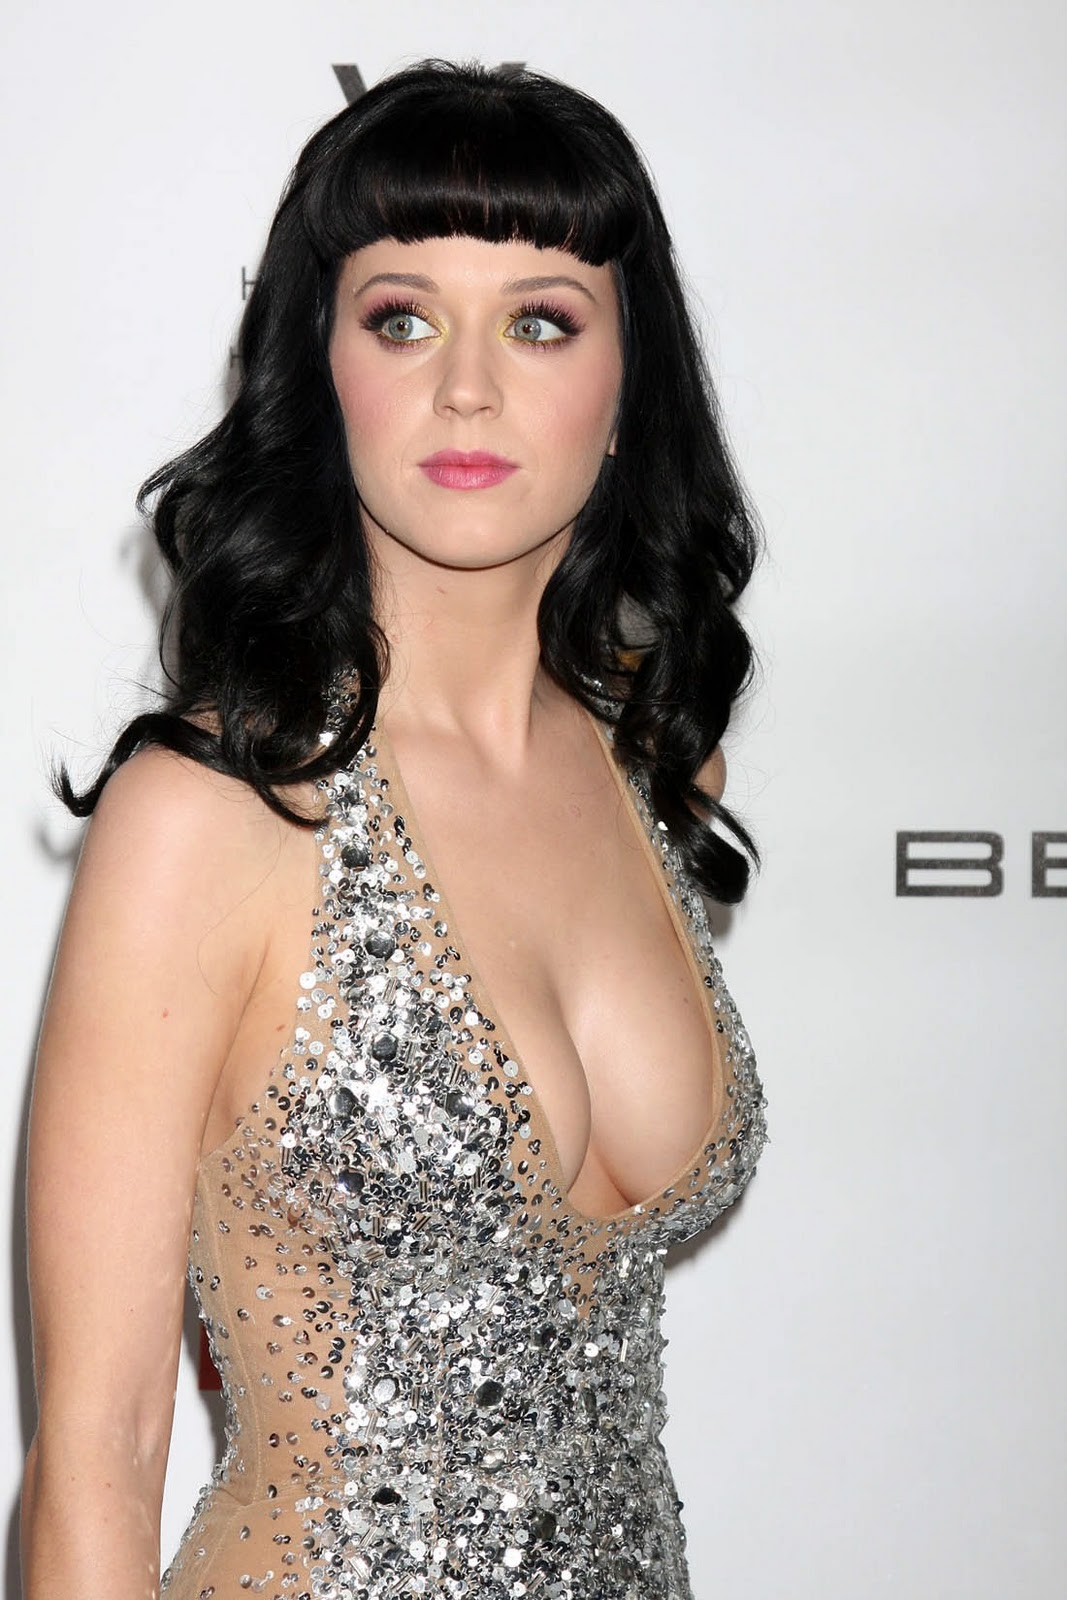 katy perry sex photo